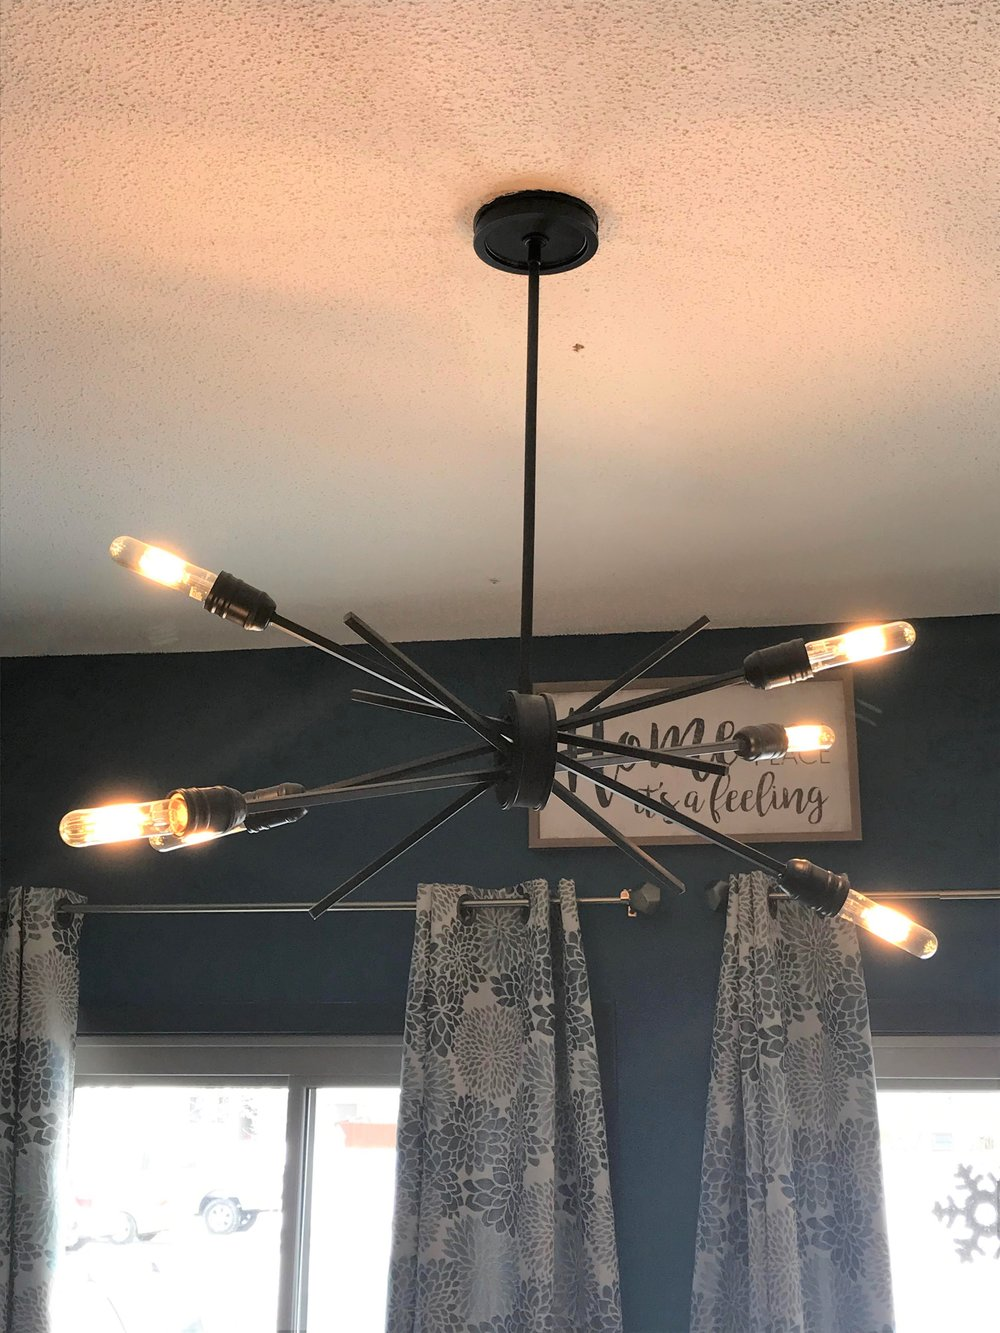 Six-light Sputnik light fixture  in Oil Rubbed Bronze from Bright Ideas, Rochester MN.